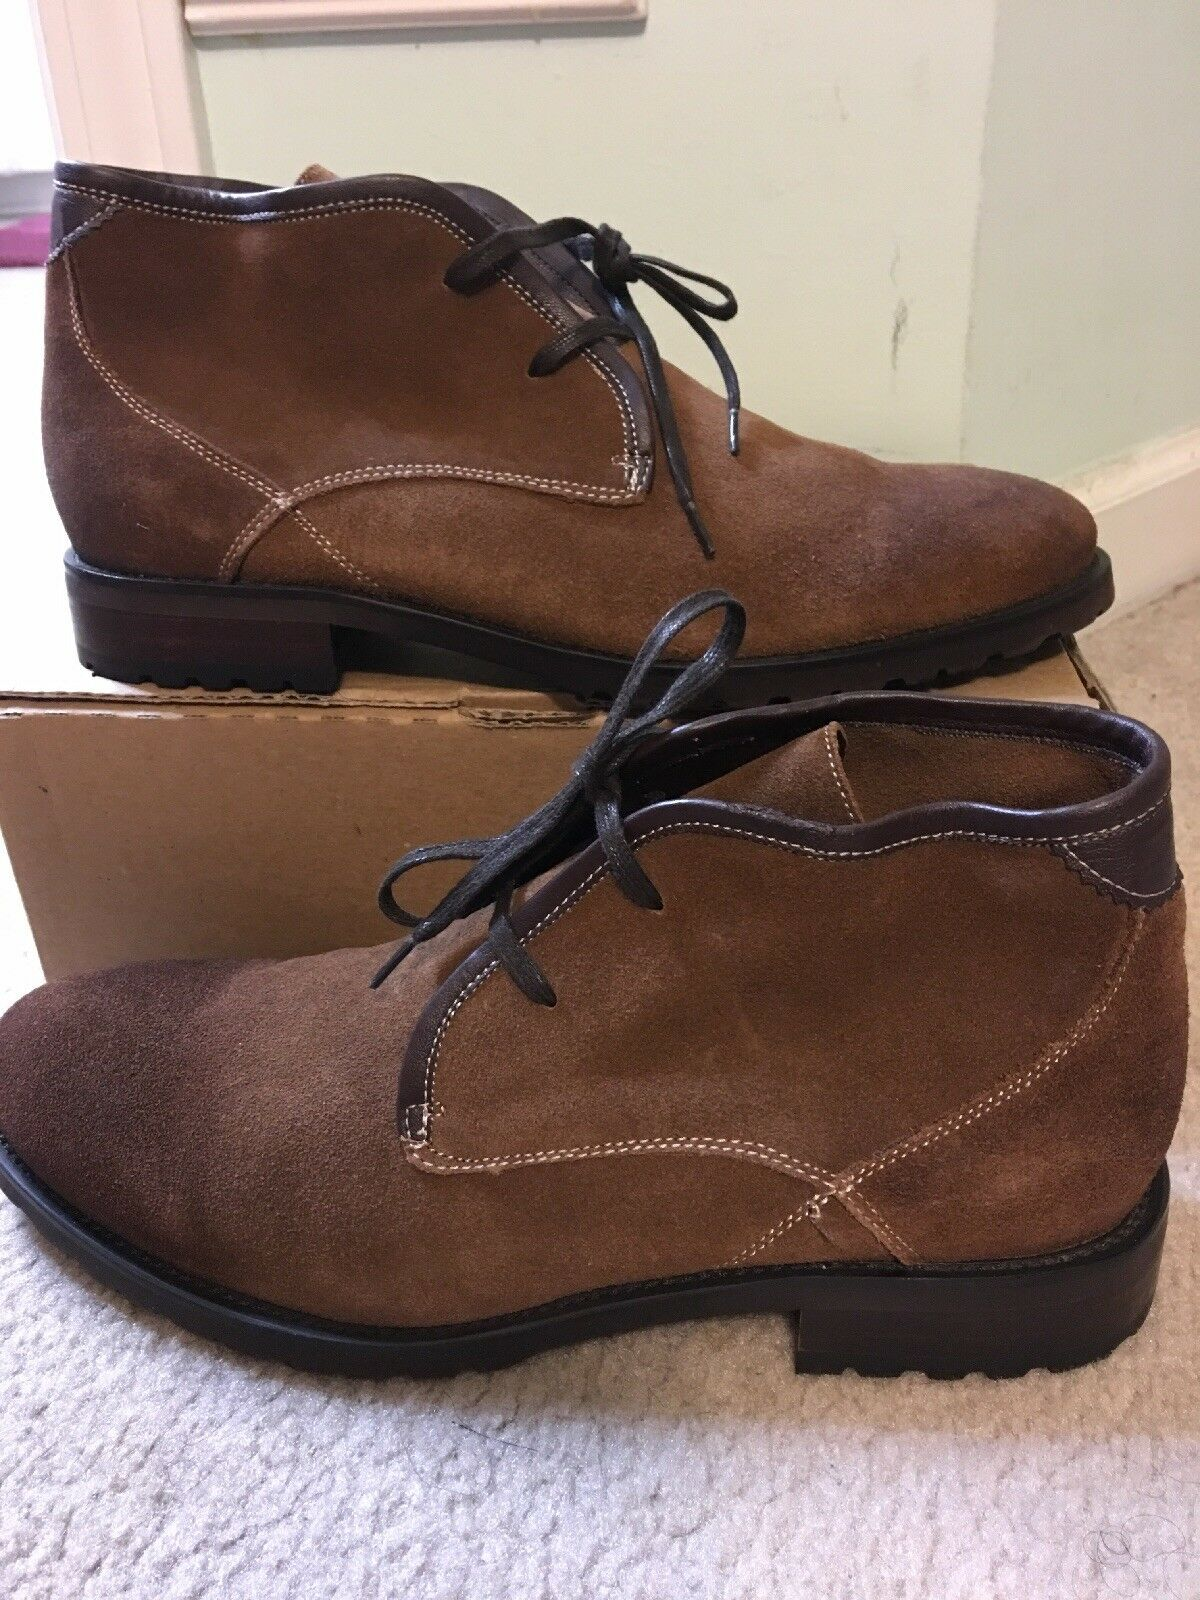 Gentleman/Lady jd fisk boots Crazy price, Birmingham Highly praised and appreciated by the consumer audience Superb craftsmanship